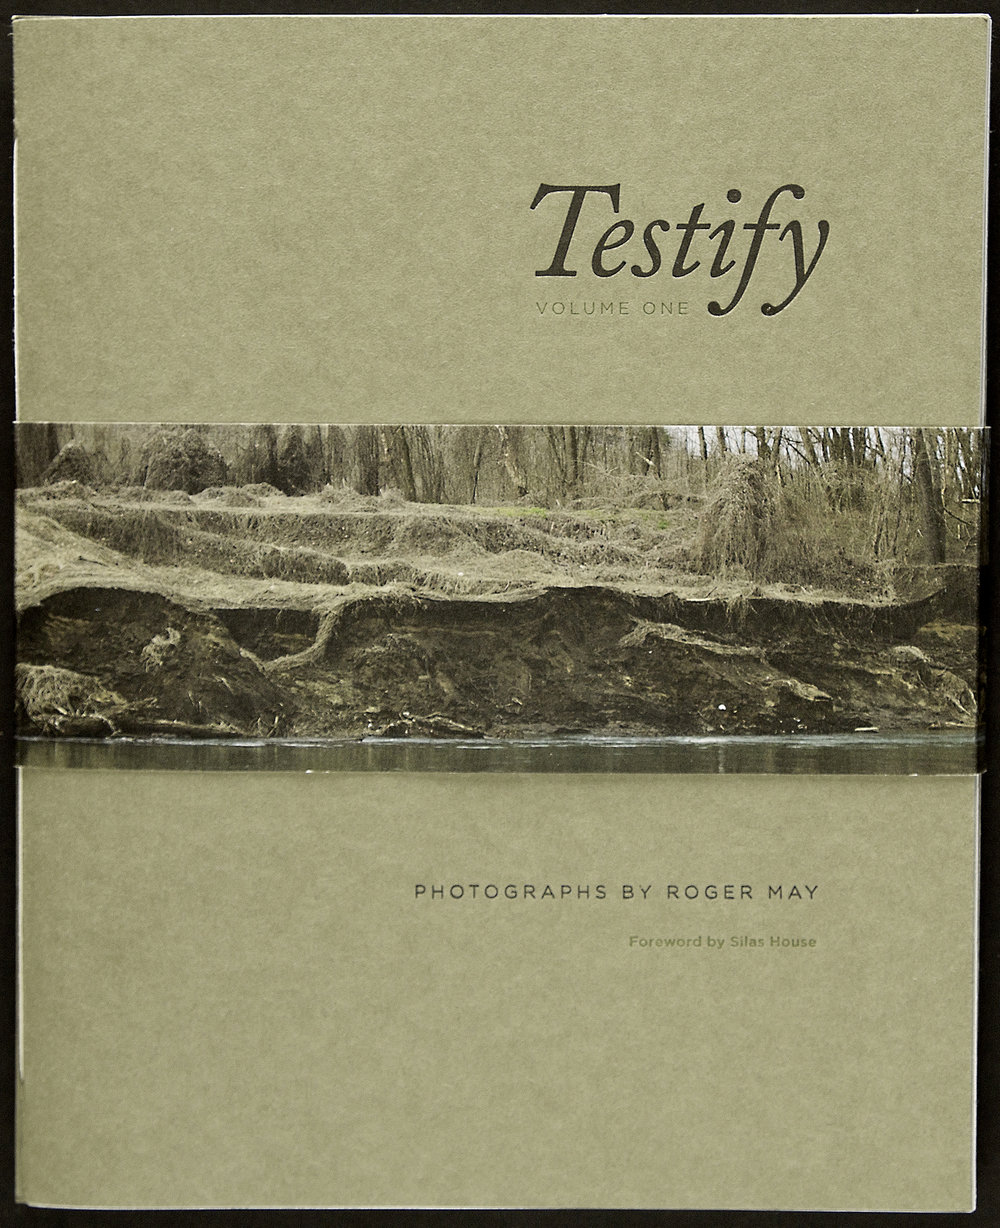 A printed bellyband holds the two volumes of this poetry collection together. The image is of the Tug River which separates West Virginia from Kentucky, the two states where Roger made the photographs in this collection.